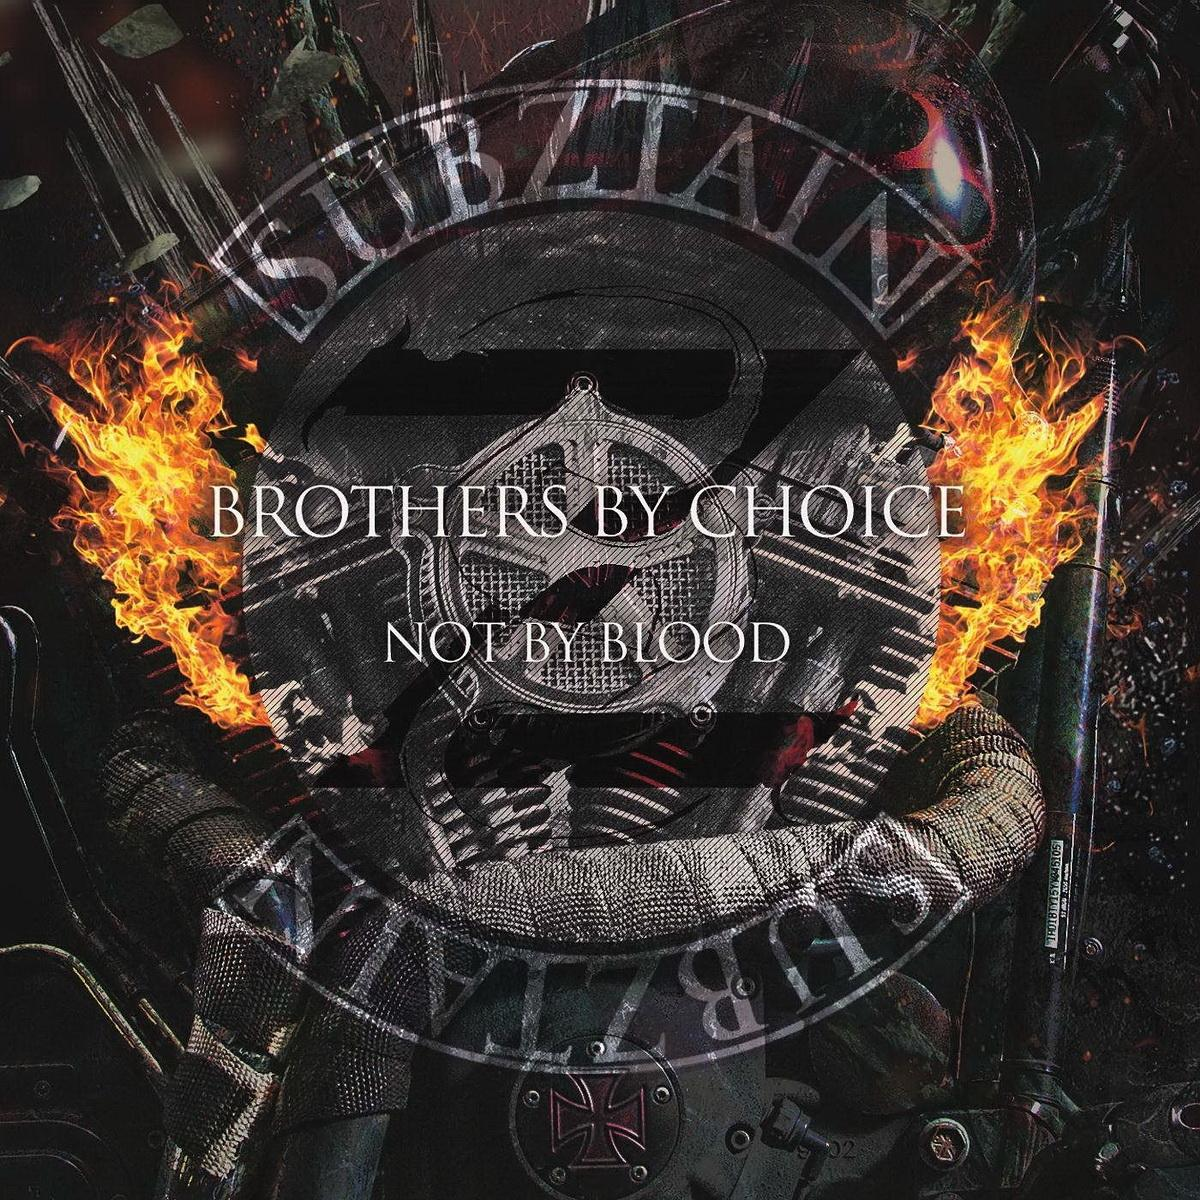 Subztain - Brothers By Choice Not By Blood (2016, Hard Rock) - Download for free via torrent ...